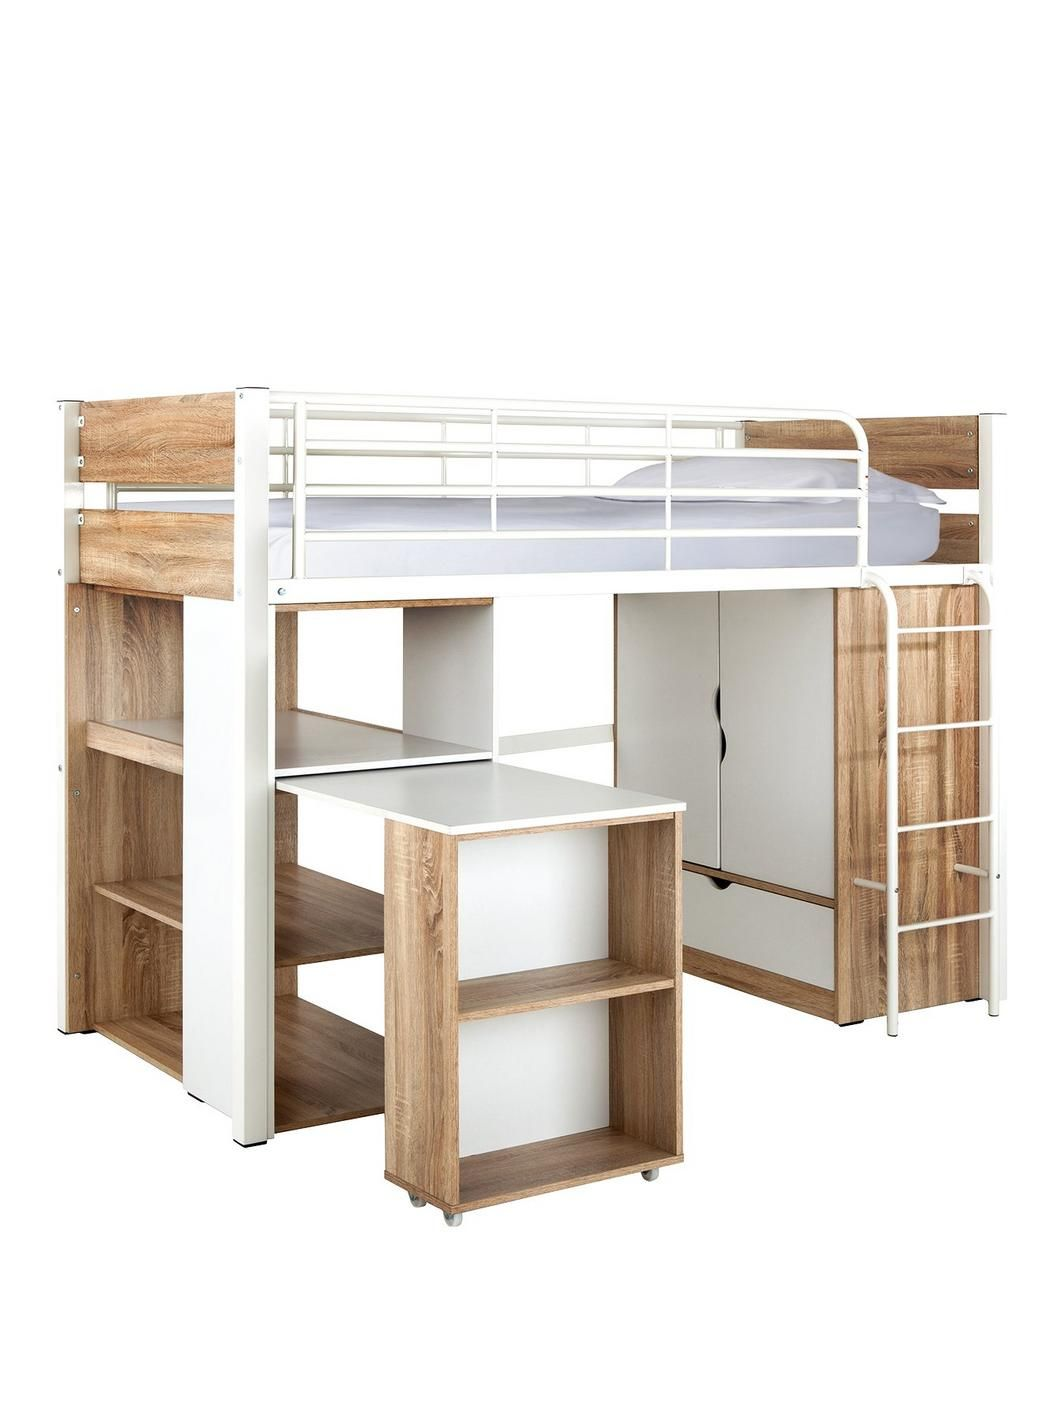 Oak loft bed with desk  Womens Mens and Kids Fashion Furniture Electricals u More  Kyles